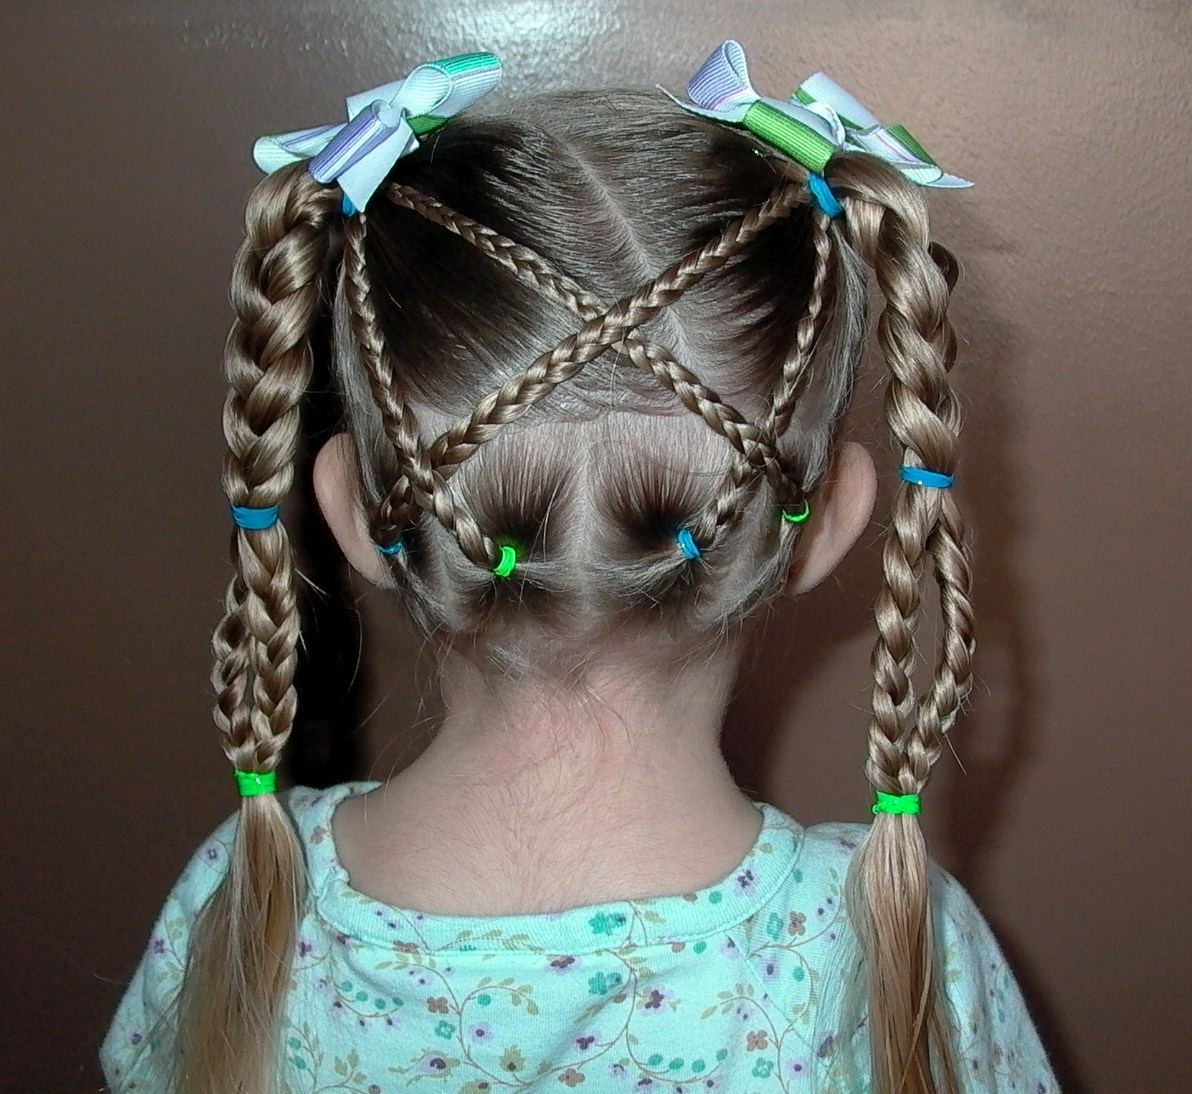 Shaunell's Hair: Little Girl's Hairstyles -The Criss Cross with Braid